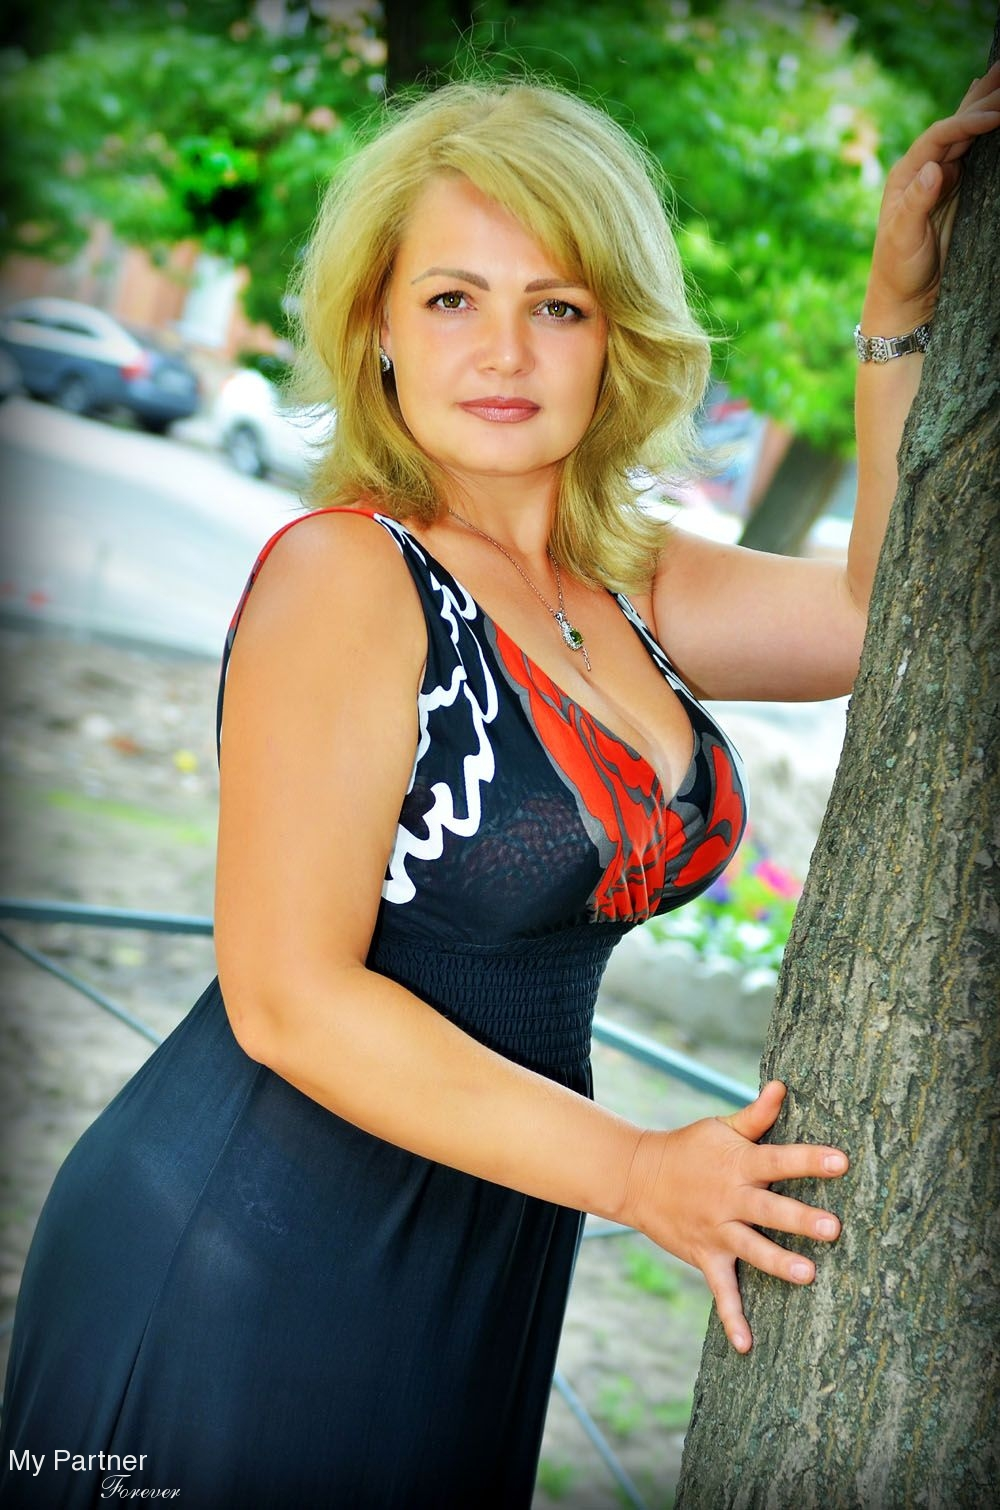 valparaiso divorced singles dating site How to take advantage of online dating to re-enter the dating scene after years of marriage i help many divorced clients who are planning on reentering the dating scene after years of.